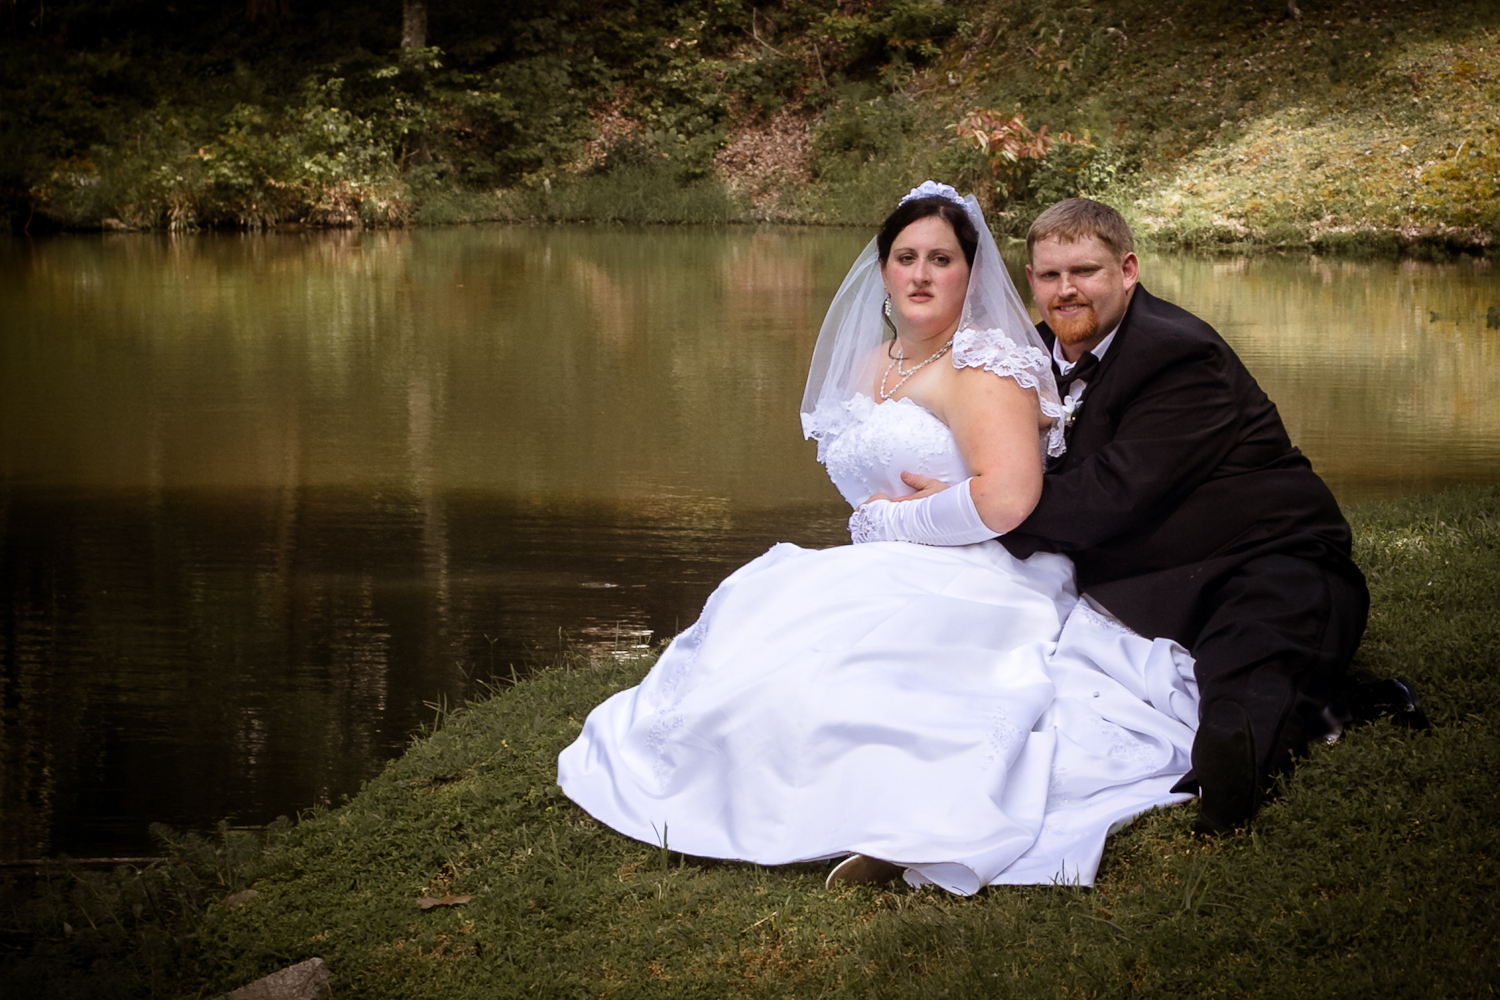 Stephanie and Matthew by the pond